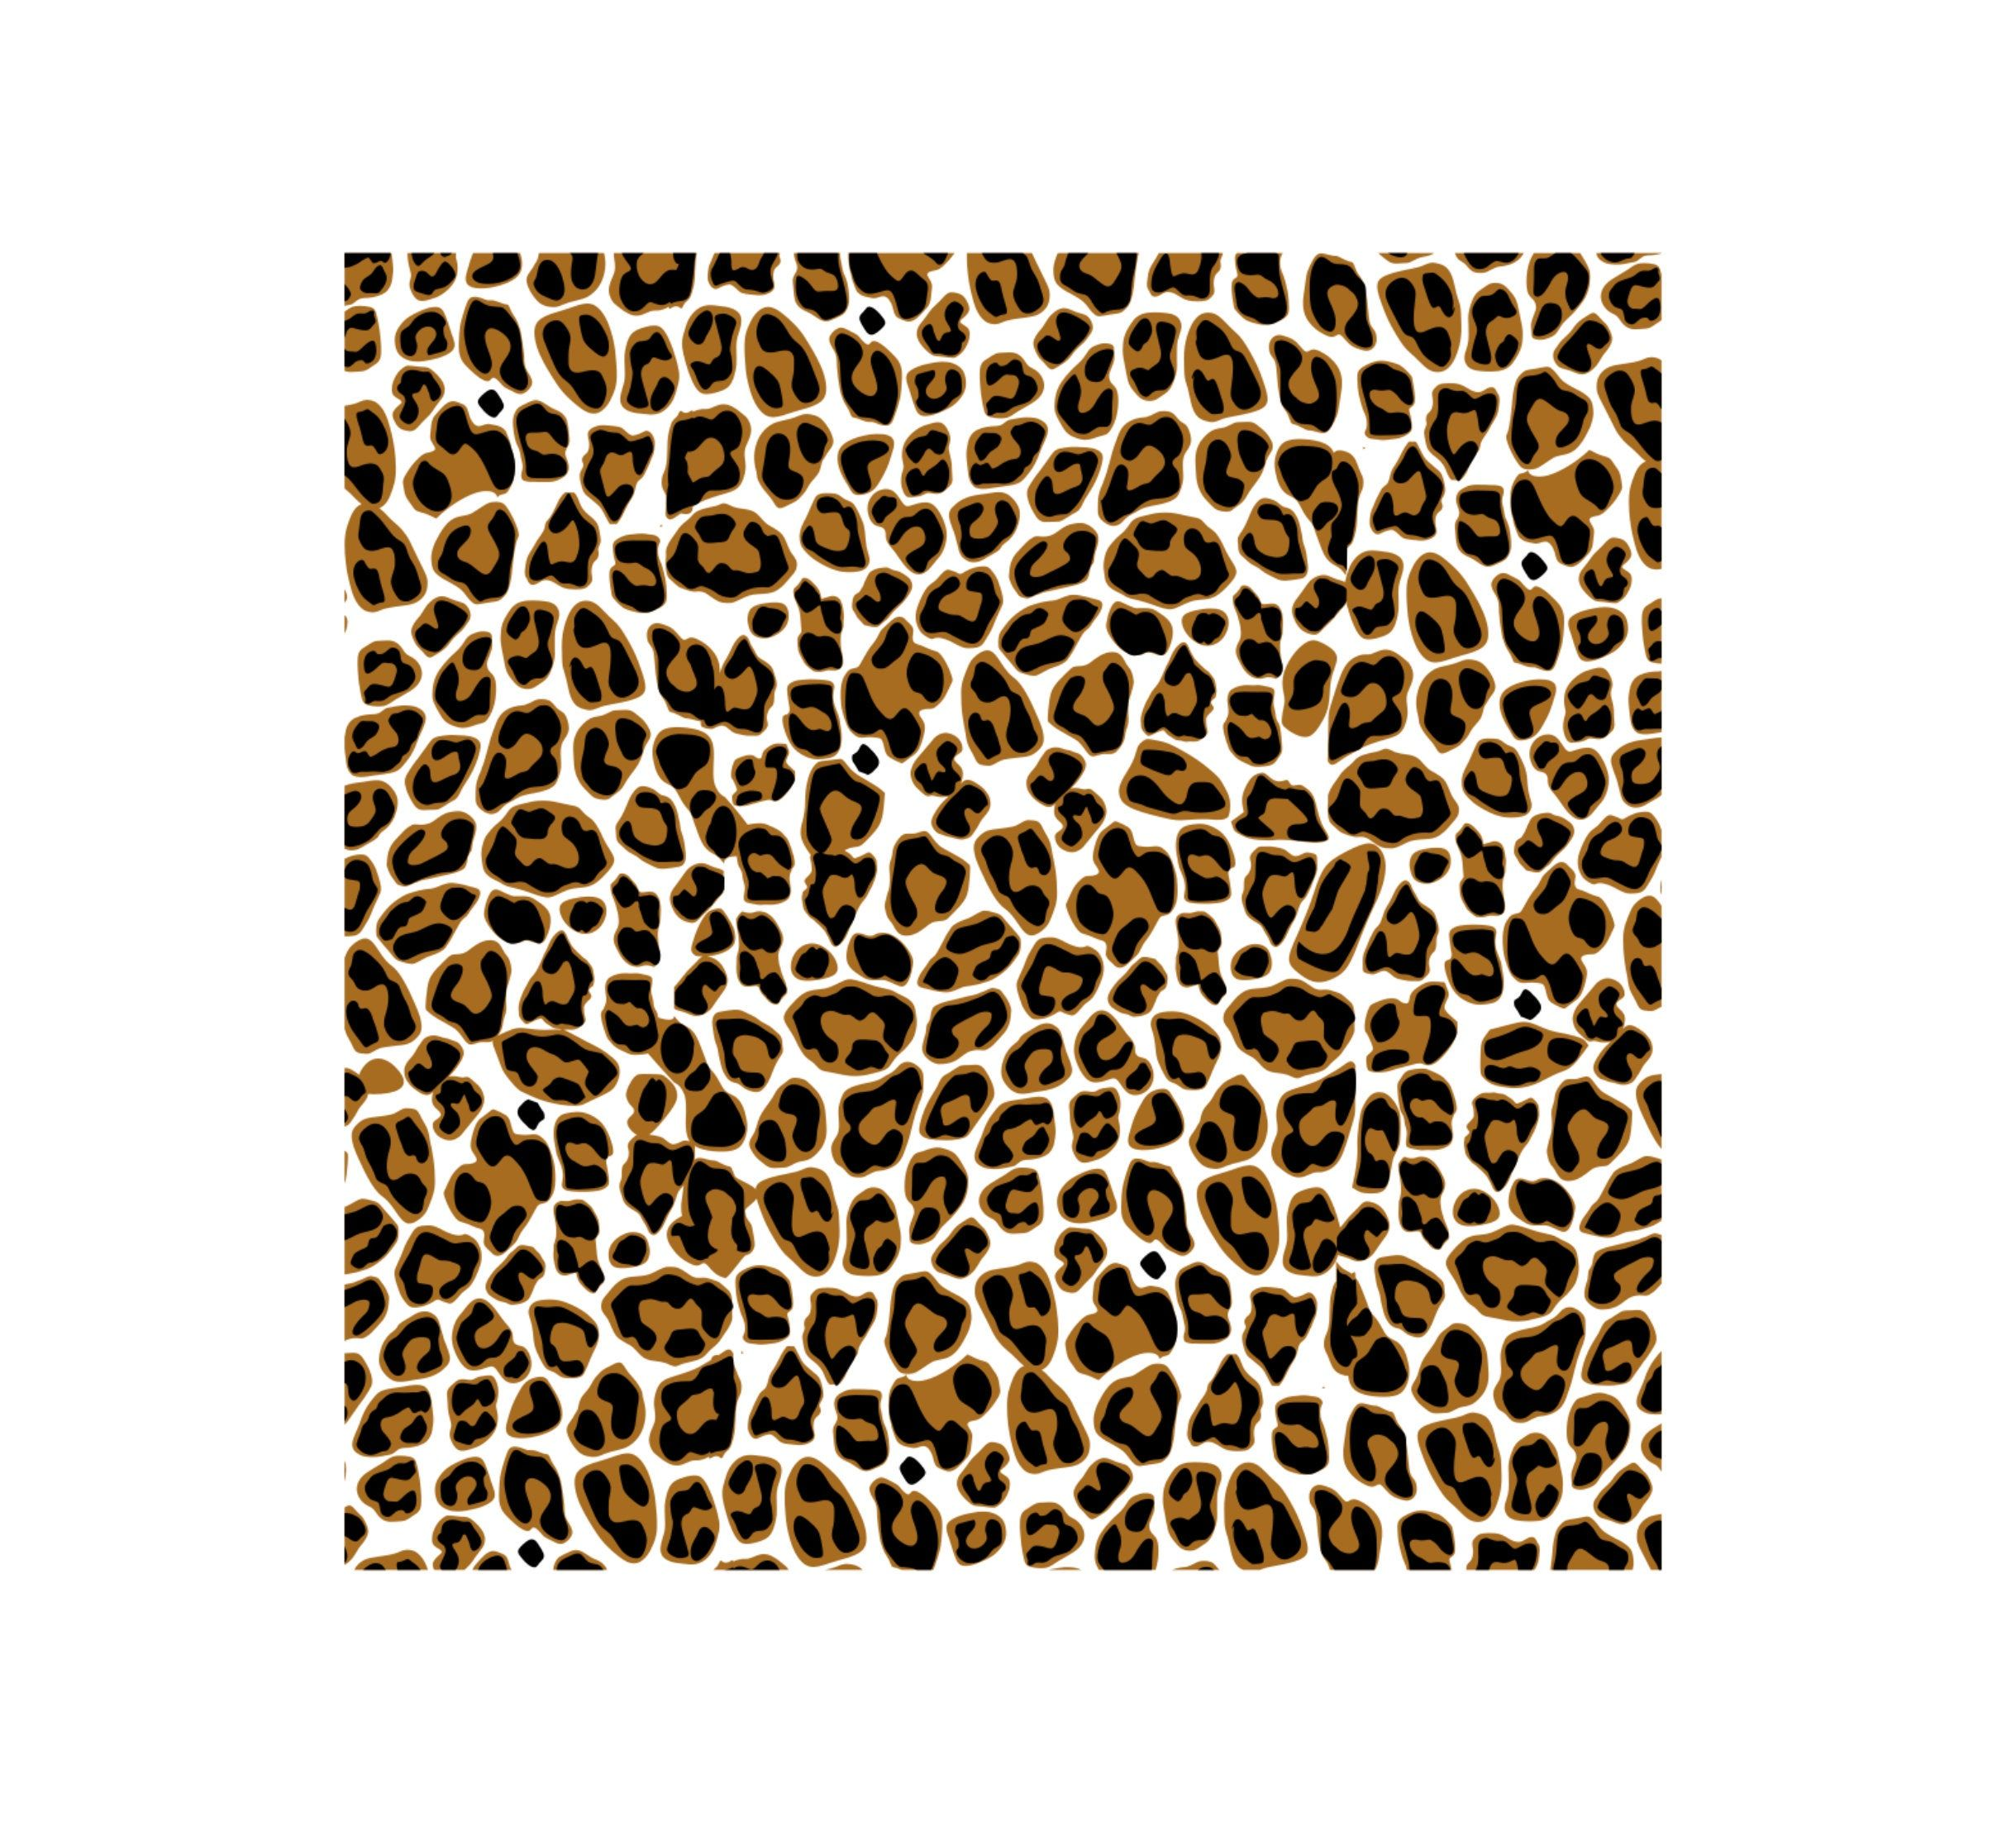 Leopard Print Leopard Clipart Hand Painted Leopard Print Leopard Shading Png Transparent Clipart Image And Psd File For Free Download Gold Wallpaper Background Rose Gold Wallpaper Print Wallpaper